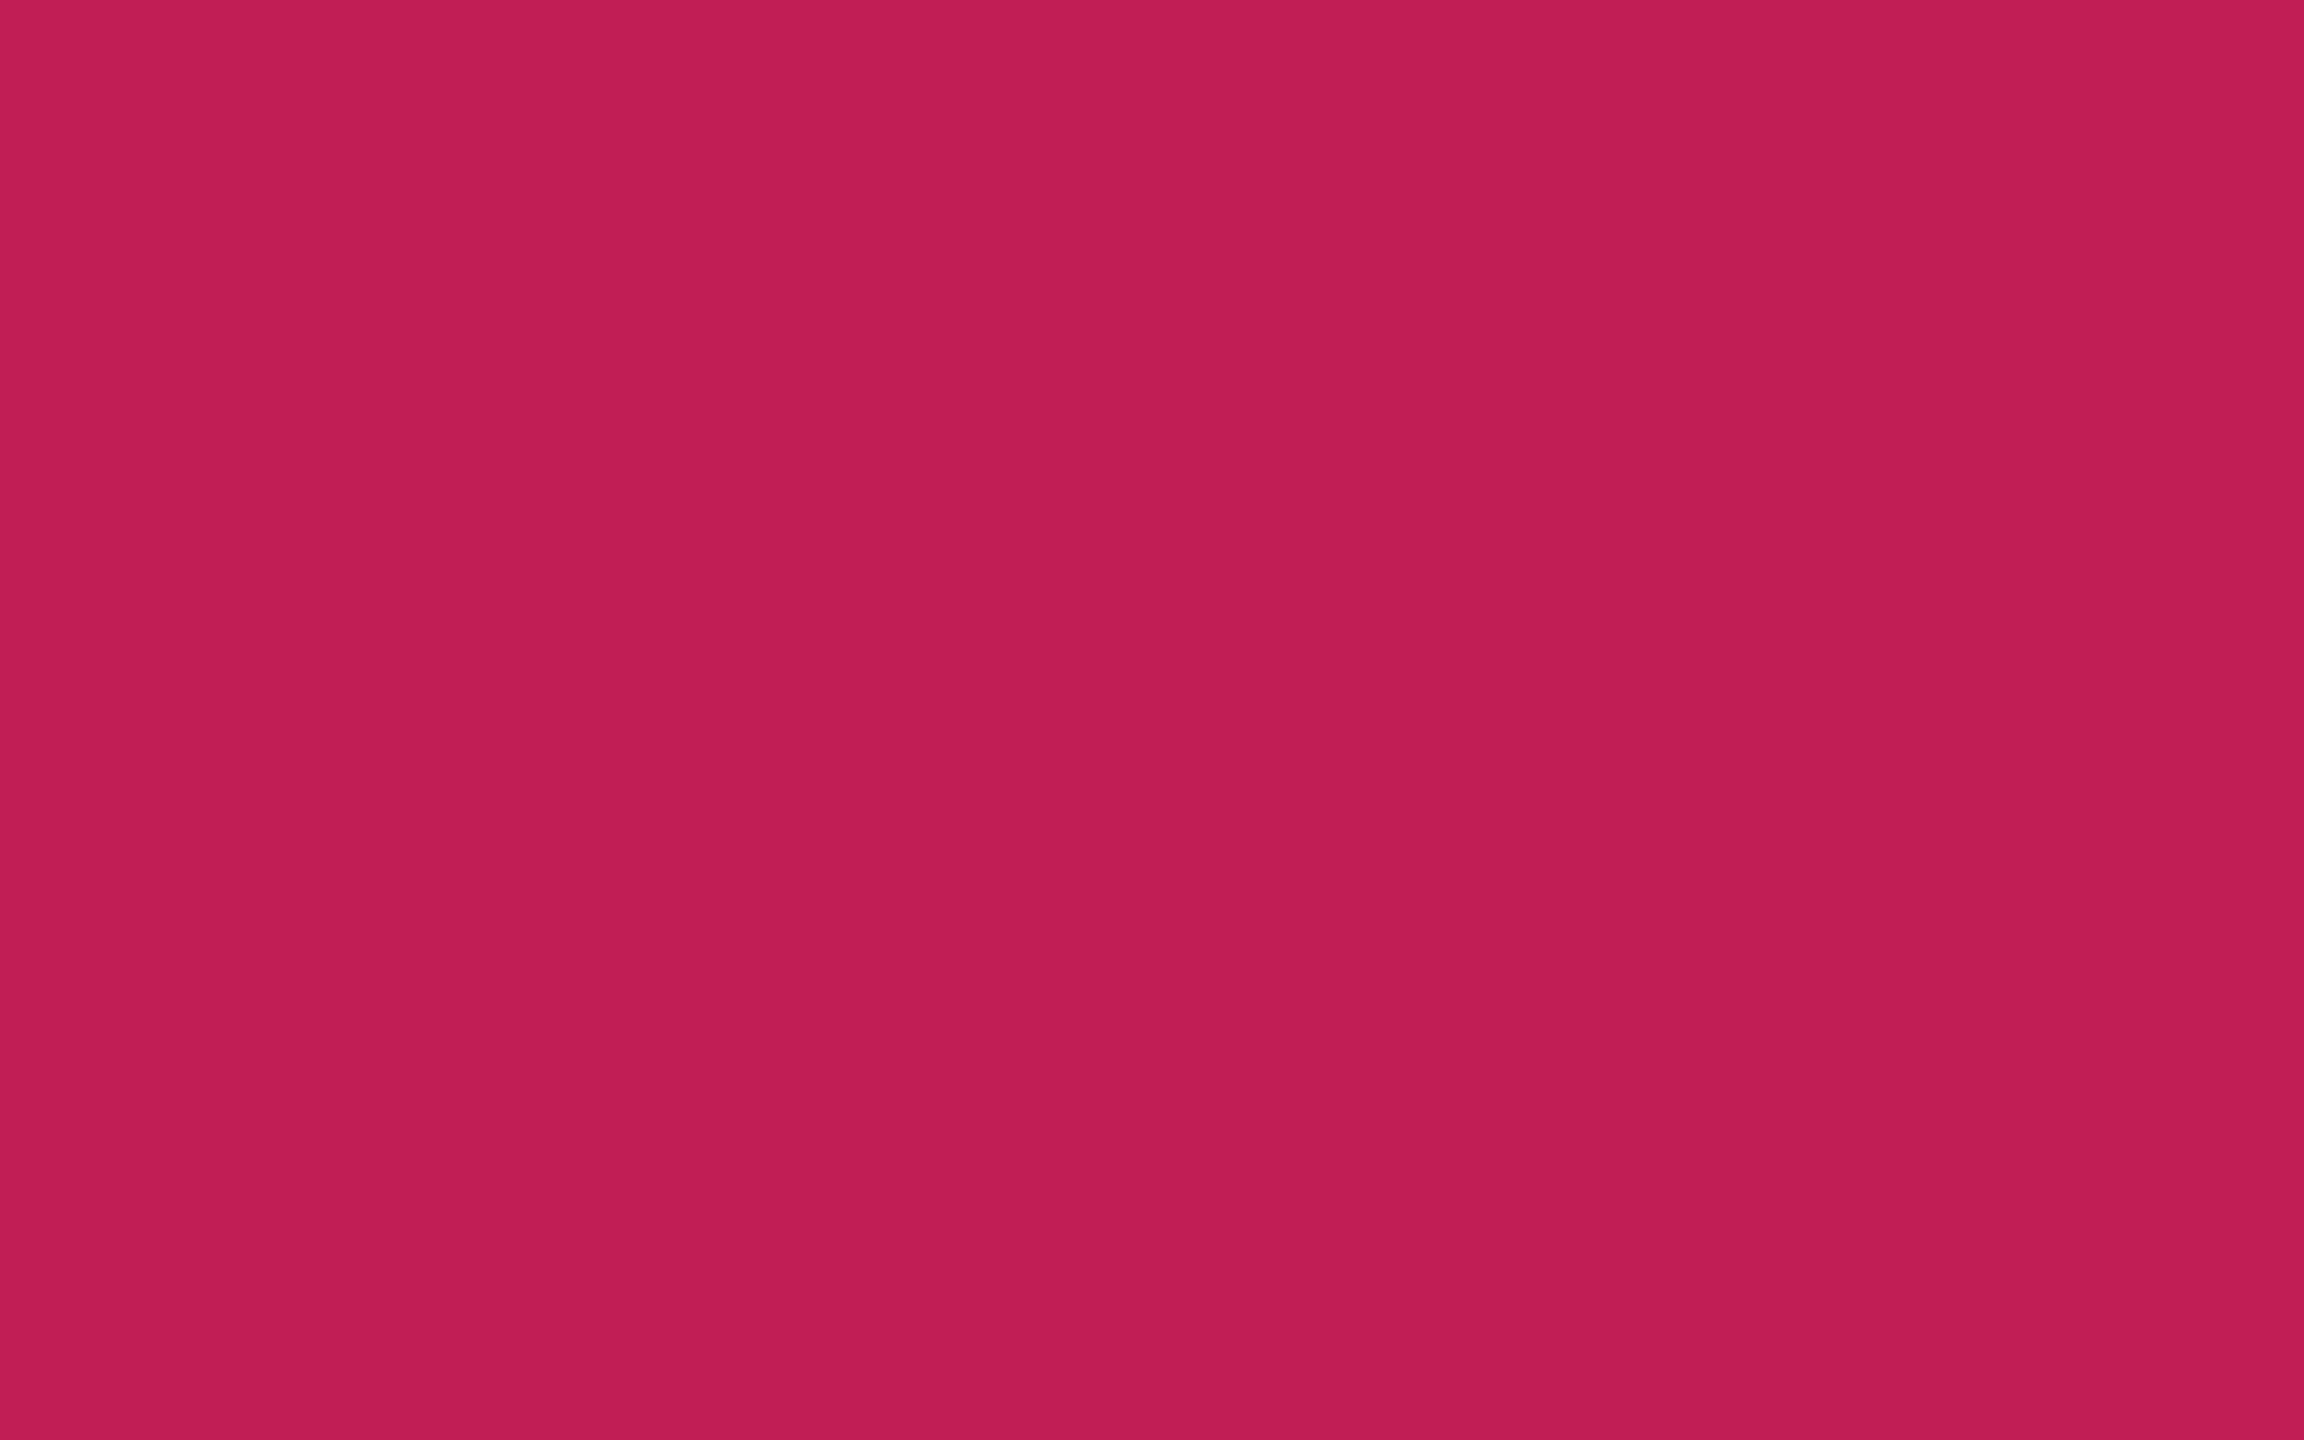 2304x1440 Rose Red Solid Color Background